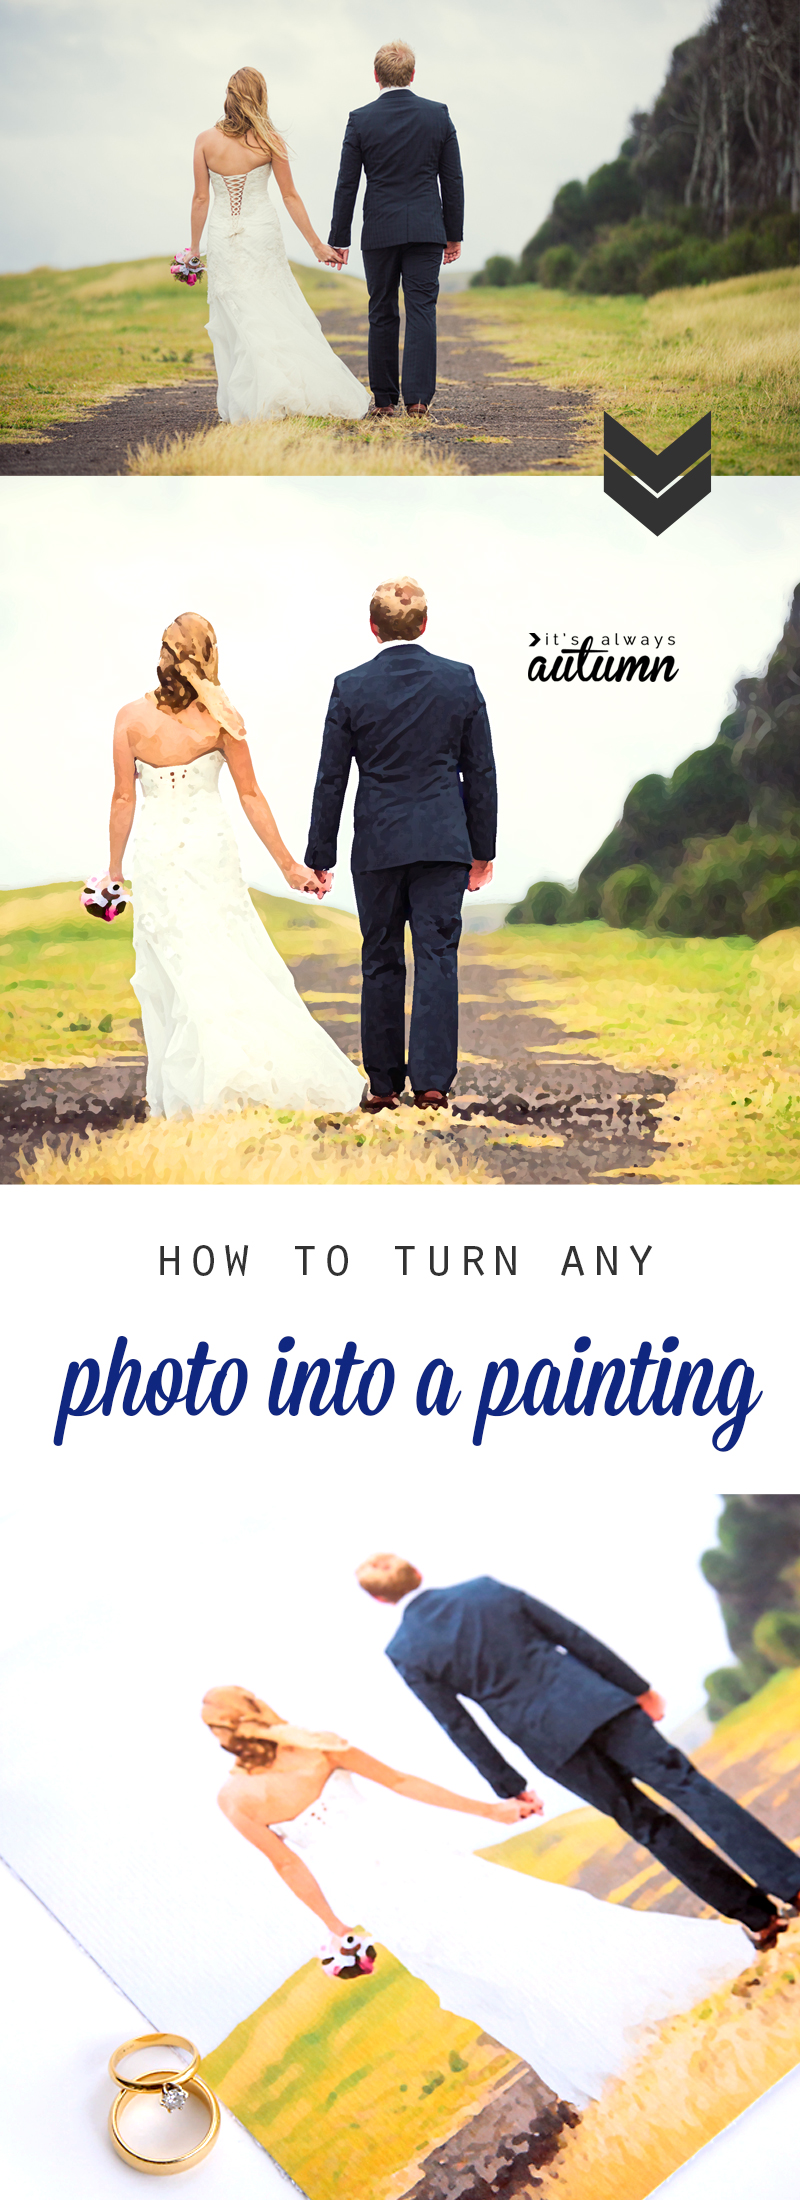 A photo man and a woman walking in the grass turned into a painting